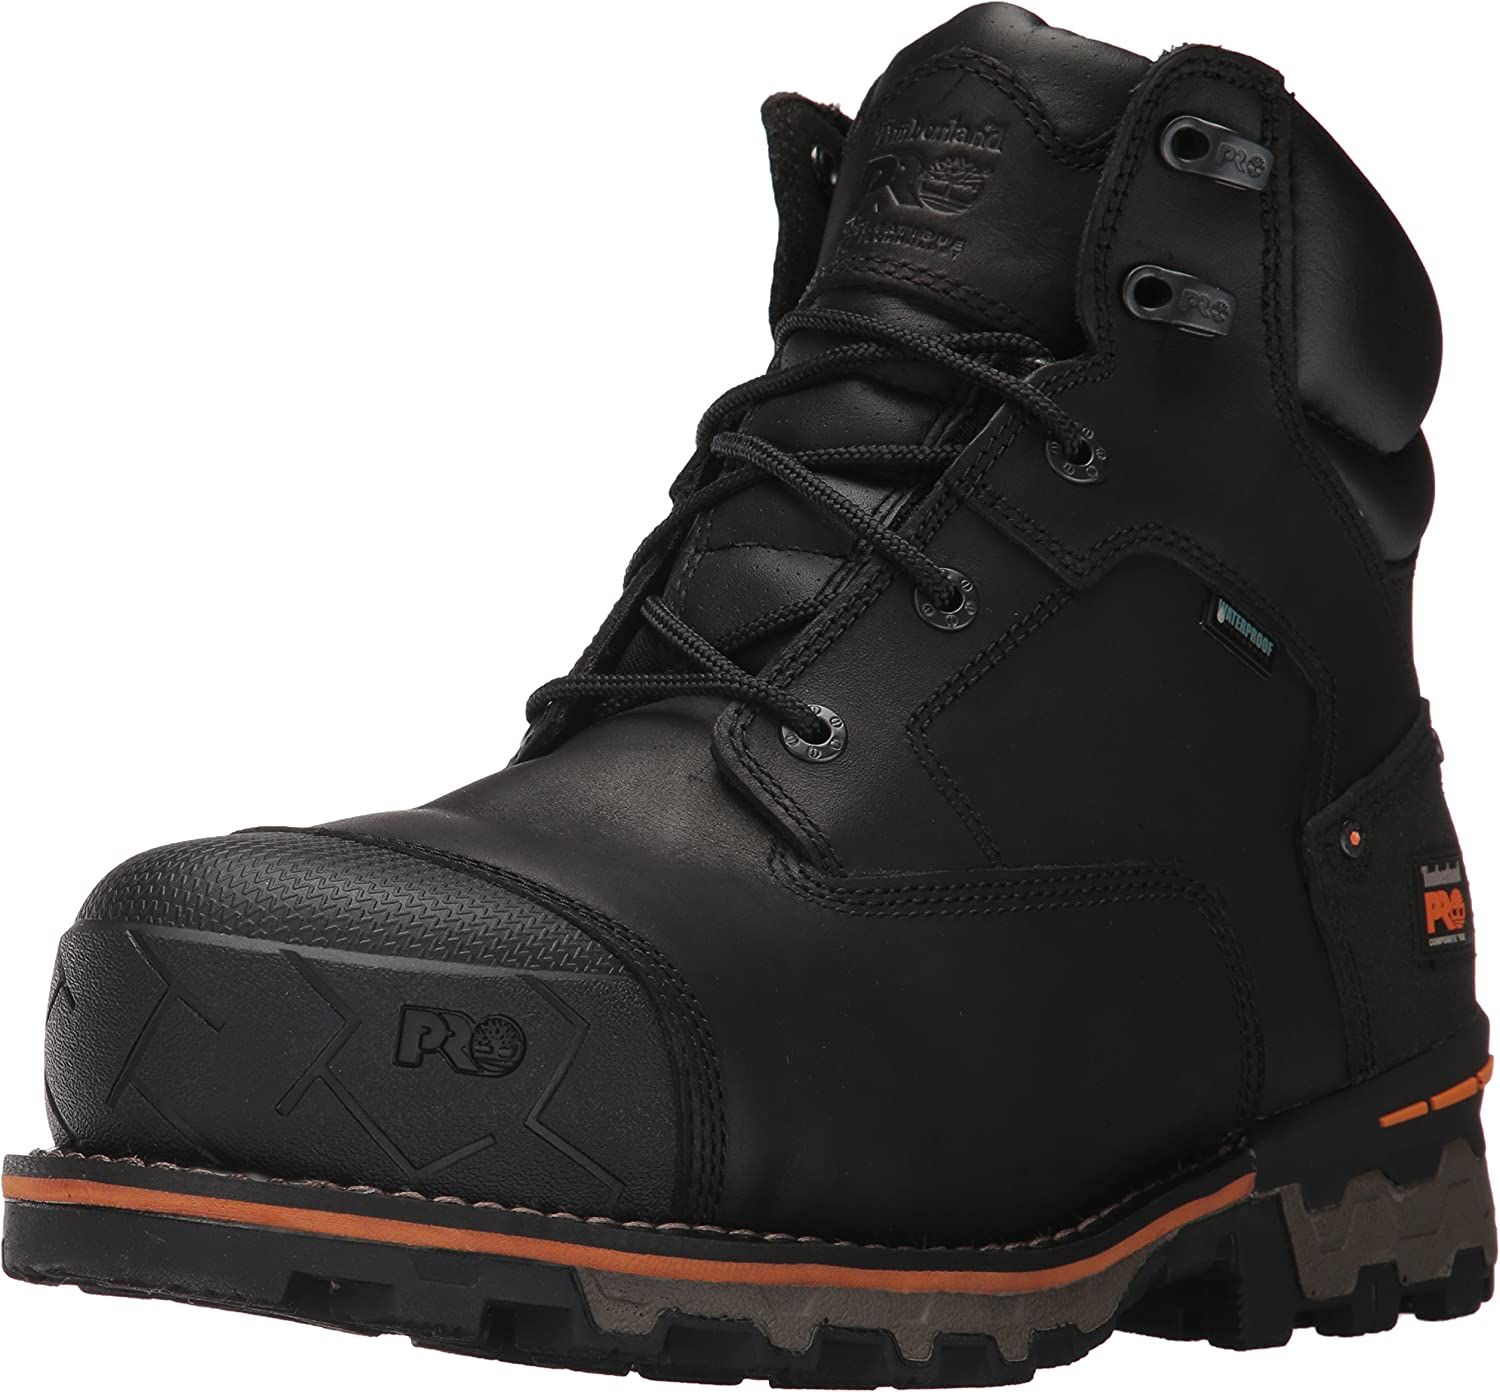 Timberland PRO Men's Boondock 6 Inch Composite Safety Toe Waterproof Industrial Work Boot, Black Full Grain Leather, 13